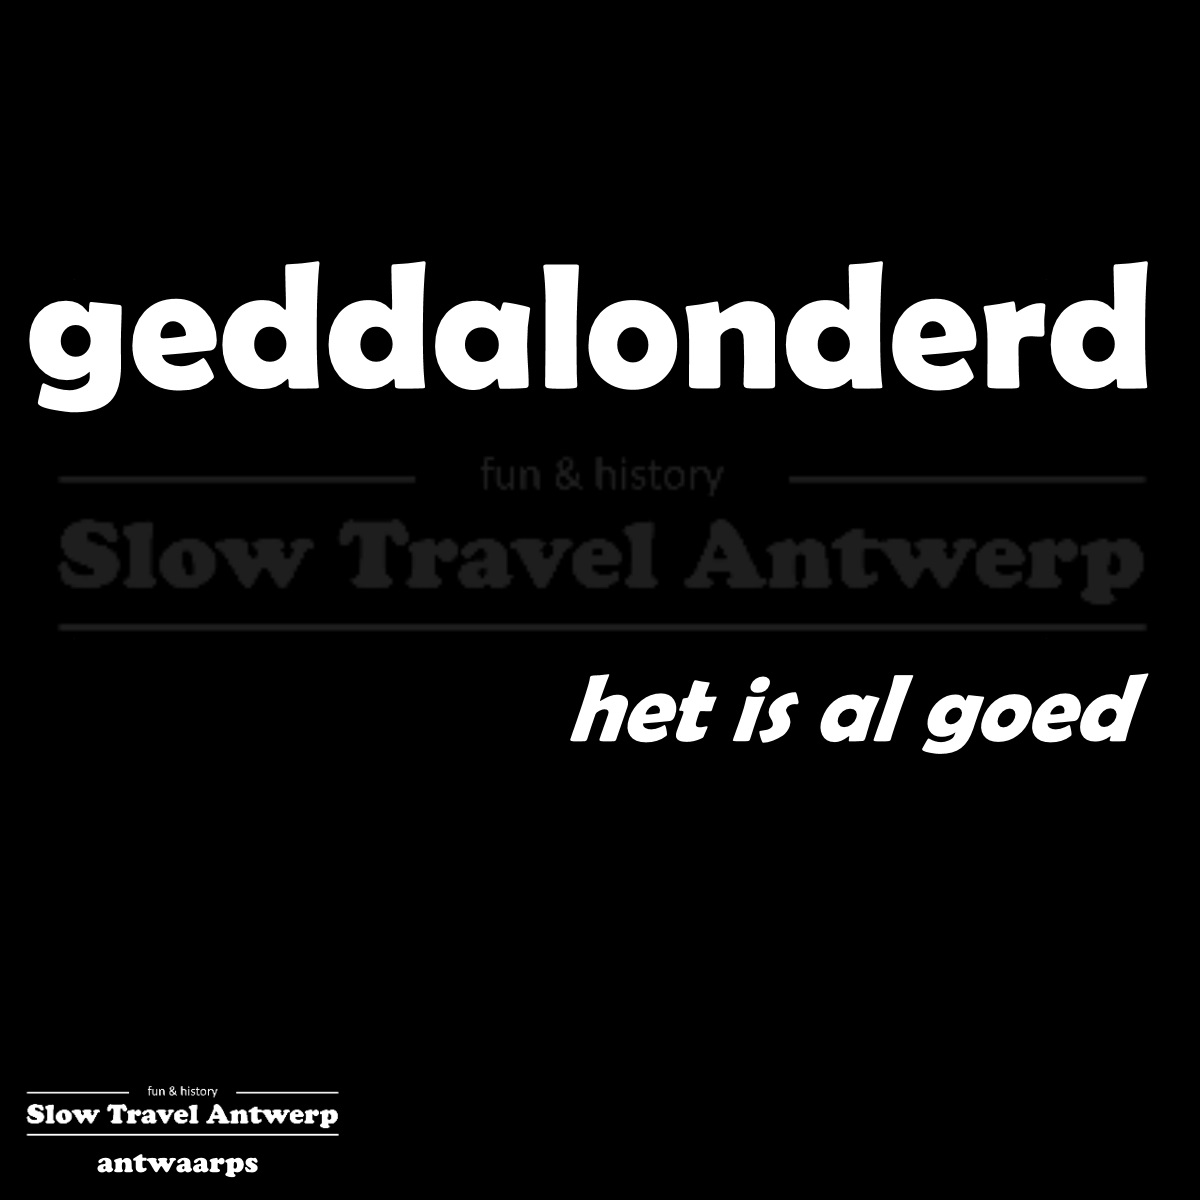 geddalonderd – het is al goed – it's okay